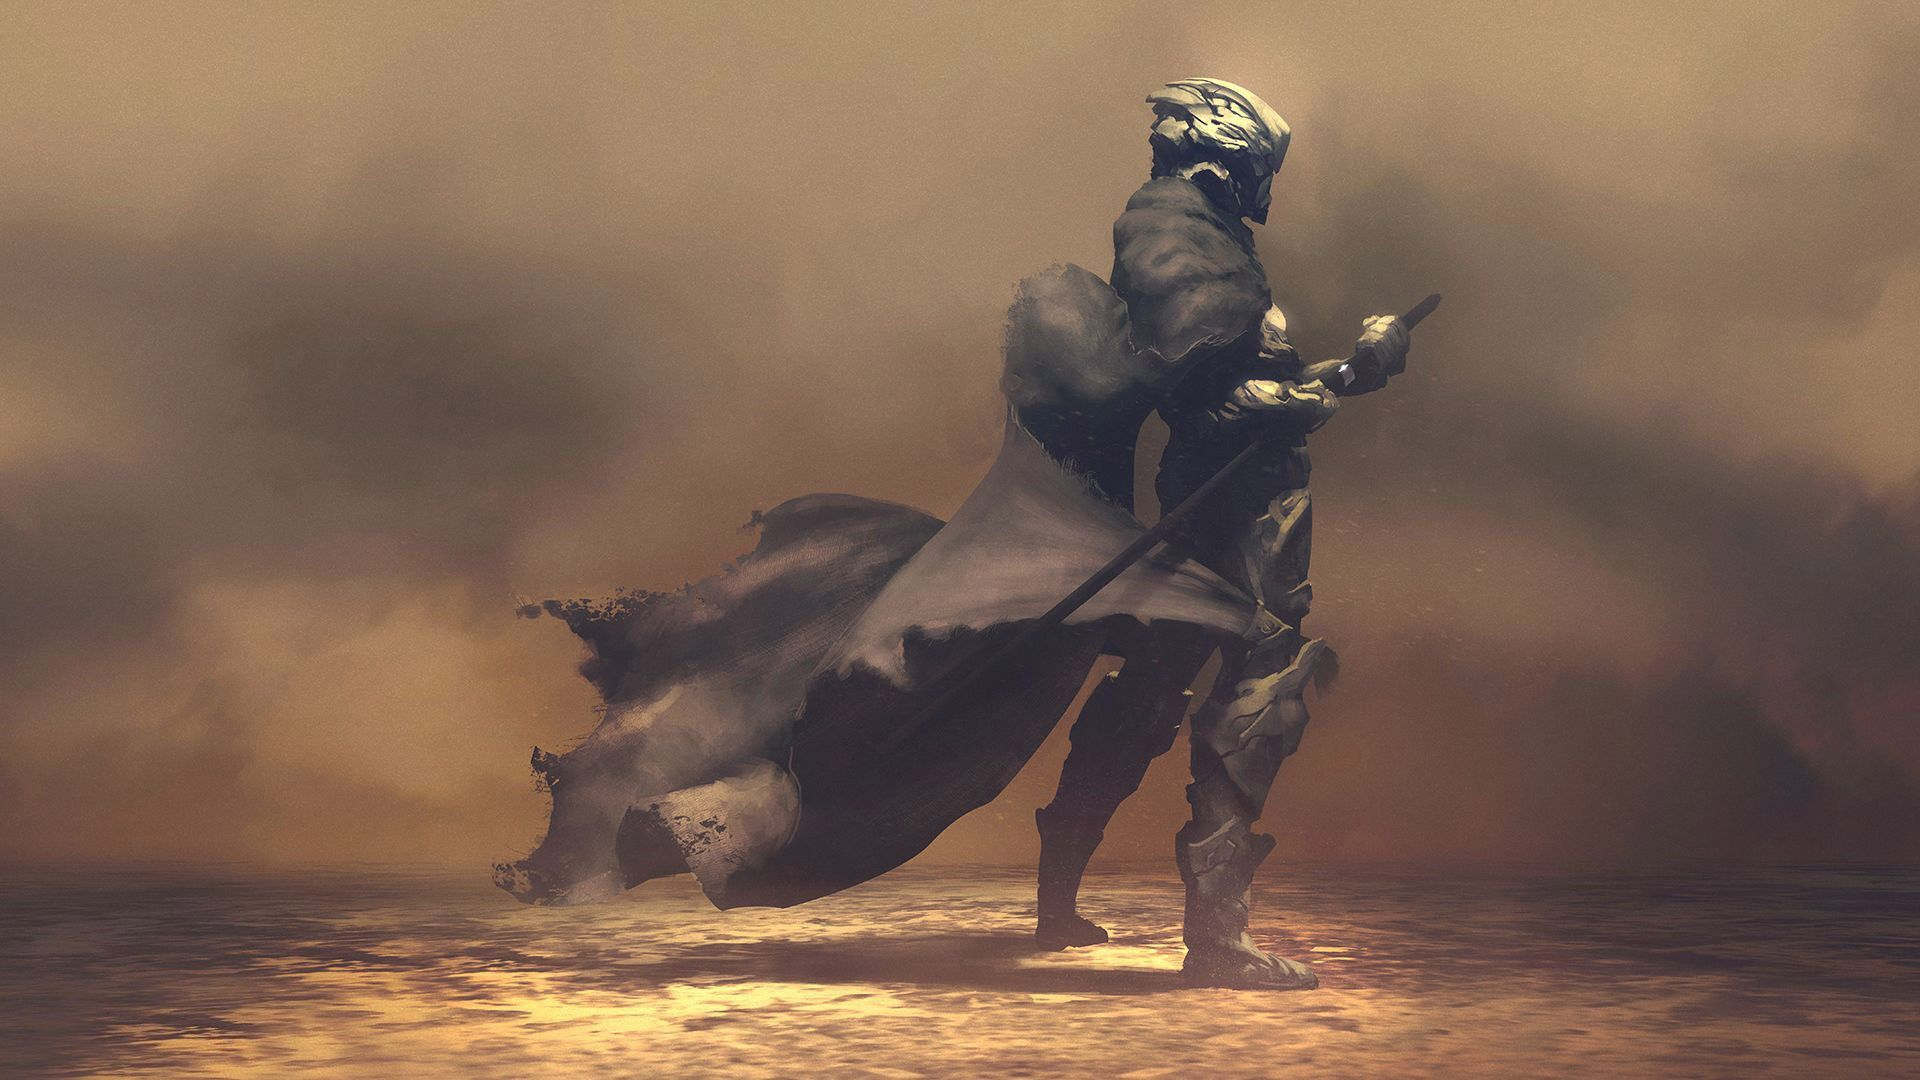 Futuristic Samurai in Smoke Wallpaper • Samurai